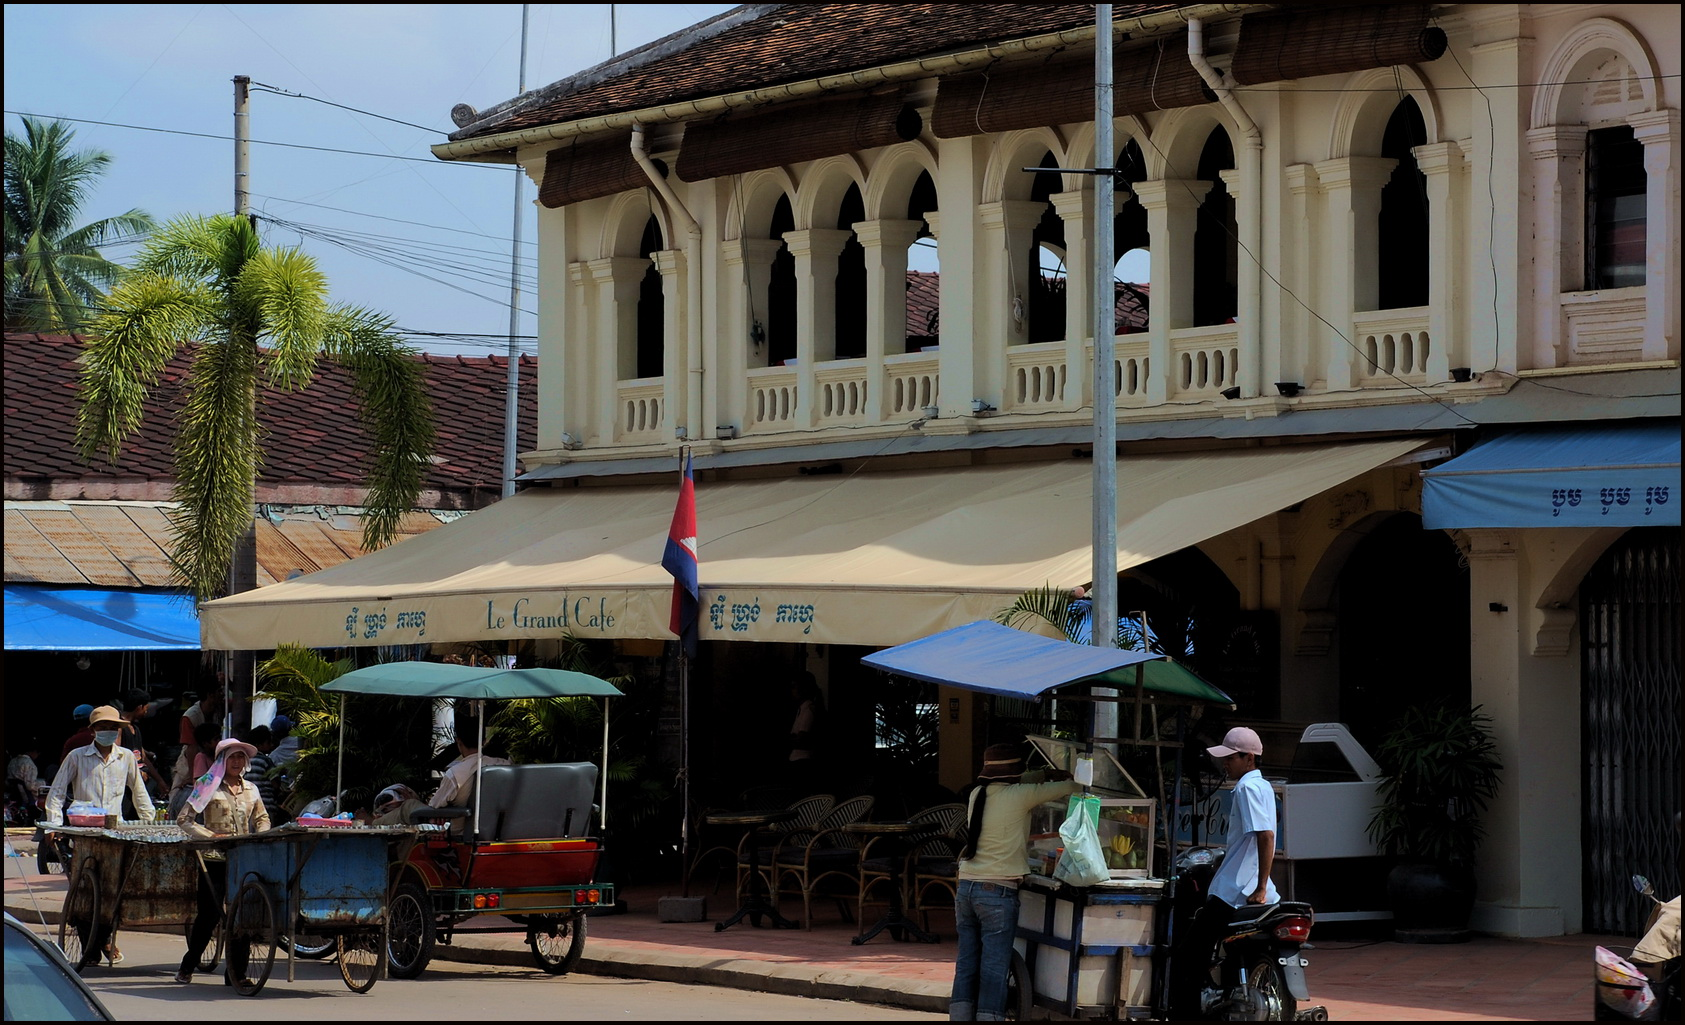 Street vendors in front of Siem Reap's Le Grand Cafe